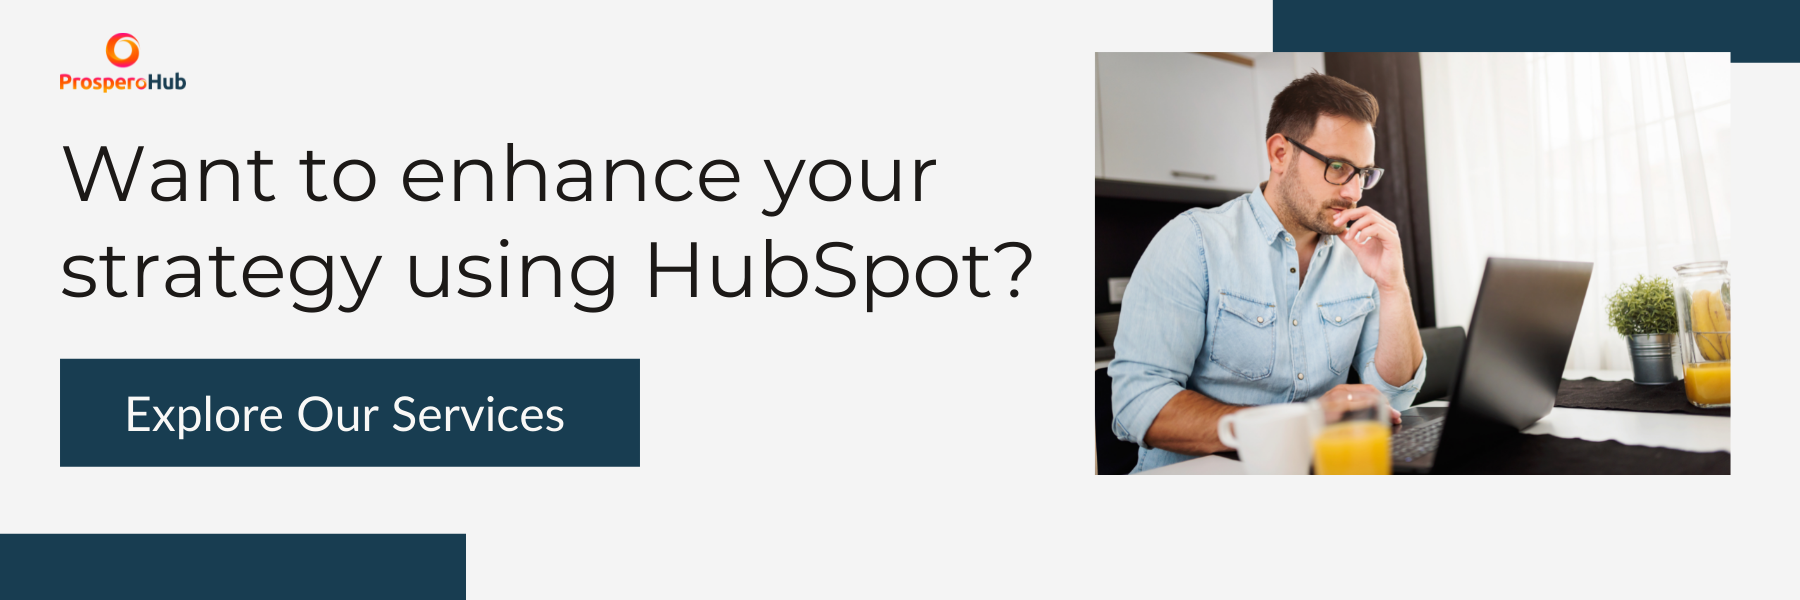 CTA - Enhance Your Strategy with HubSpot